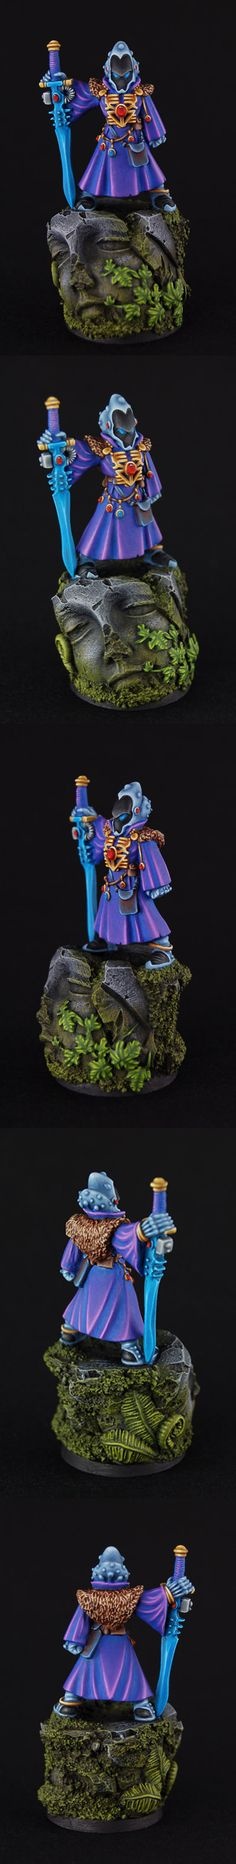 Warlock - great highlighting and color blending